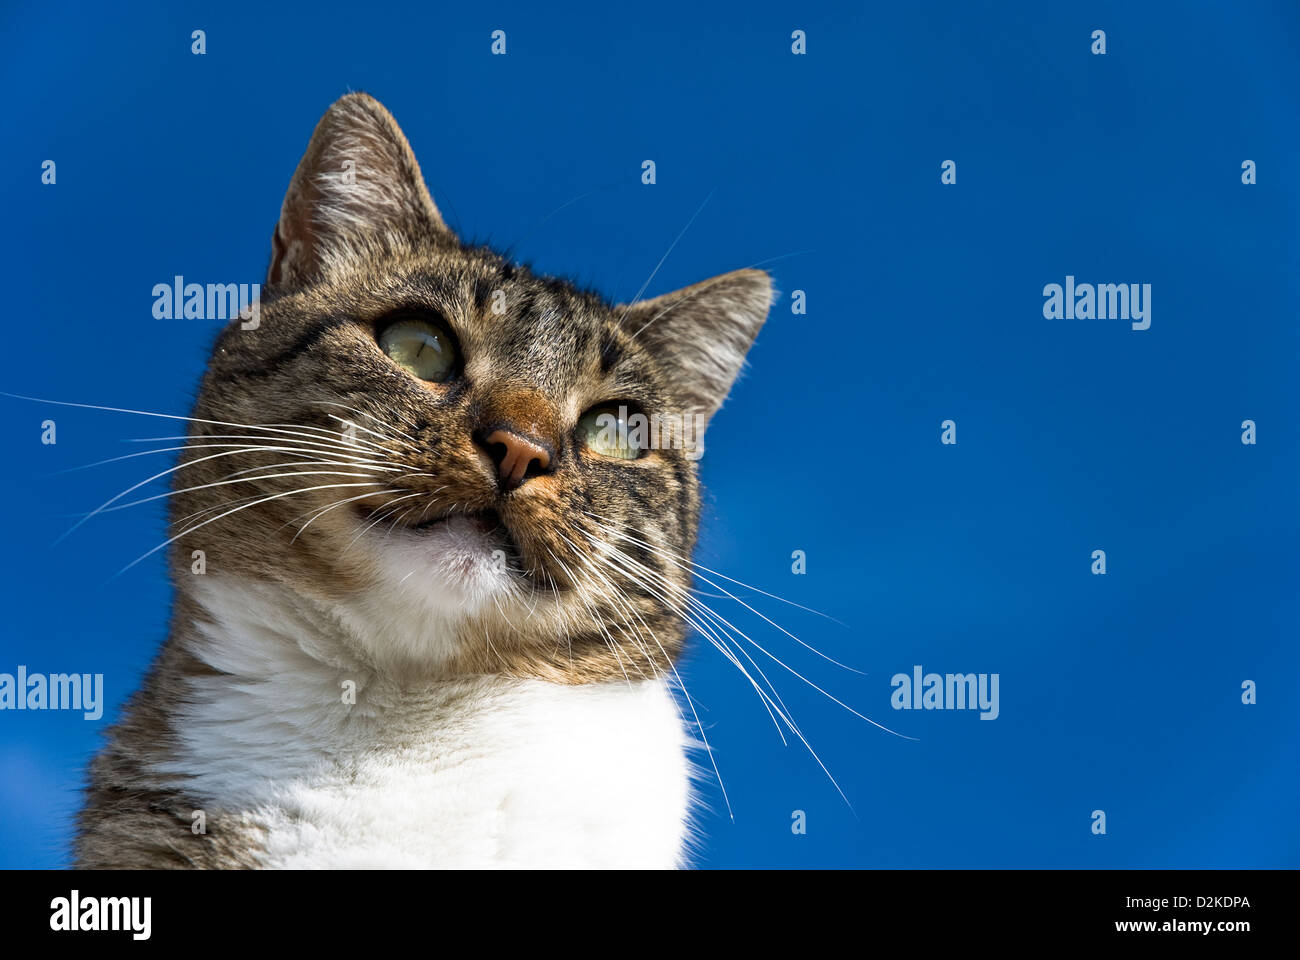 Portrait of a tabby tomcat against blue sky - Stock Image